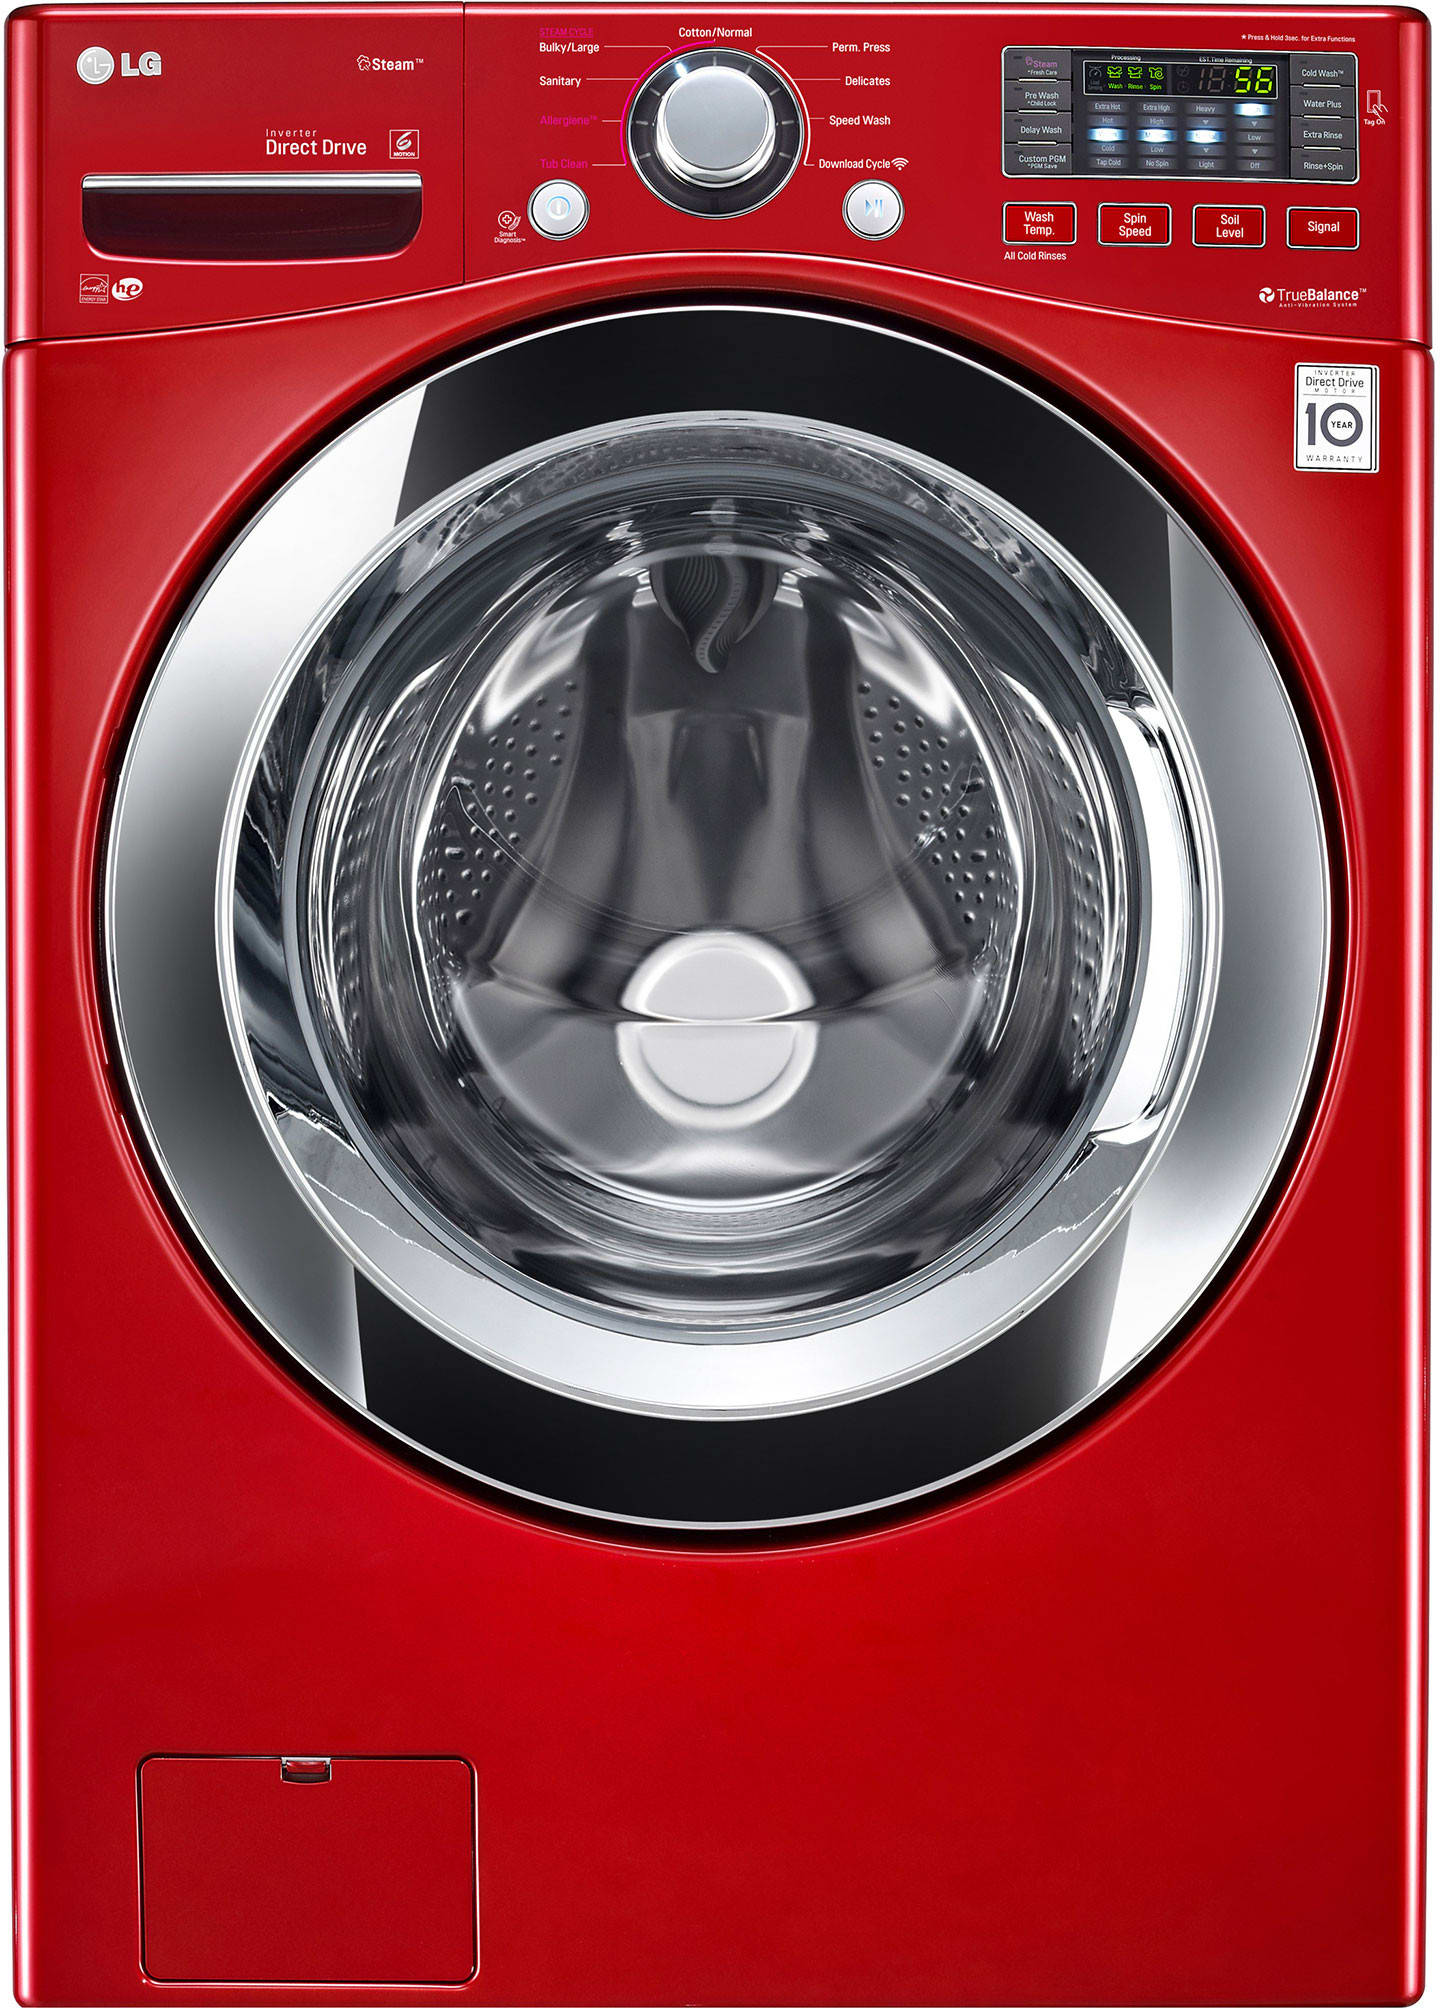 front load washer with 7 wash cycles rpm steam cycle allergiene cycle senseclean lodecibel quiet operation neverust stainless steel drum and